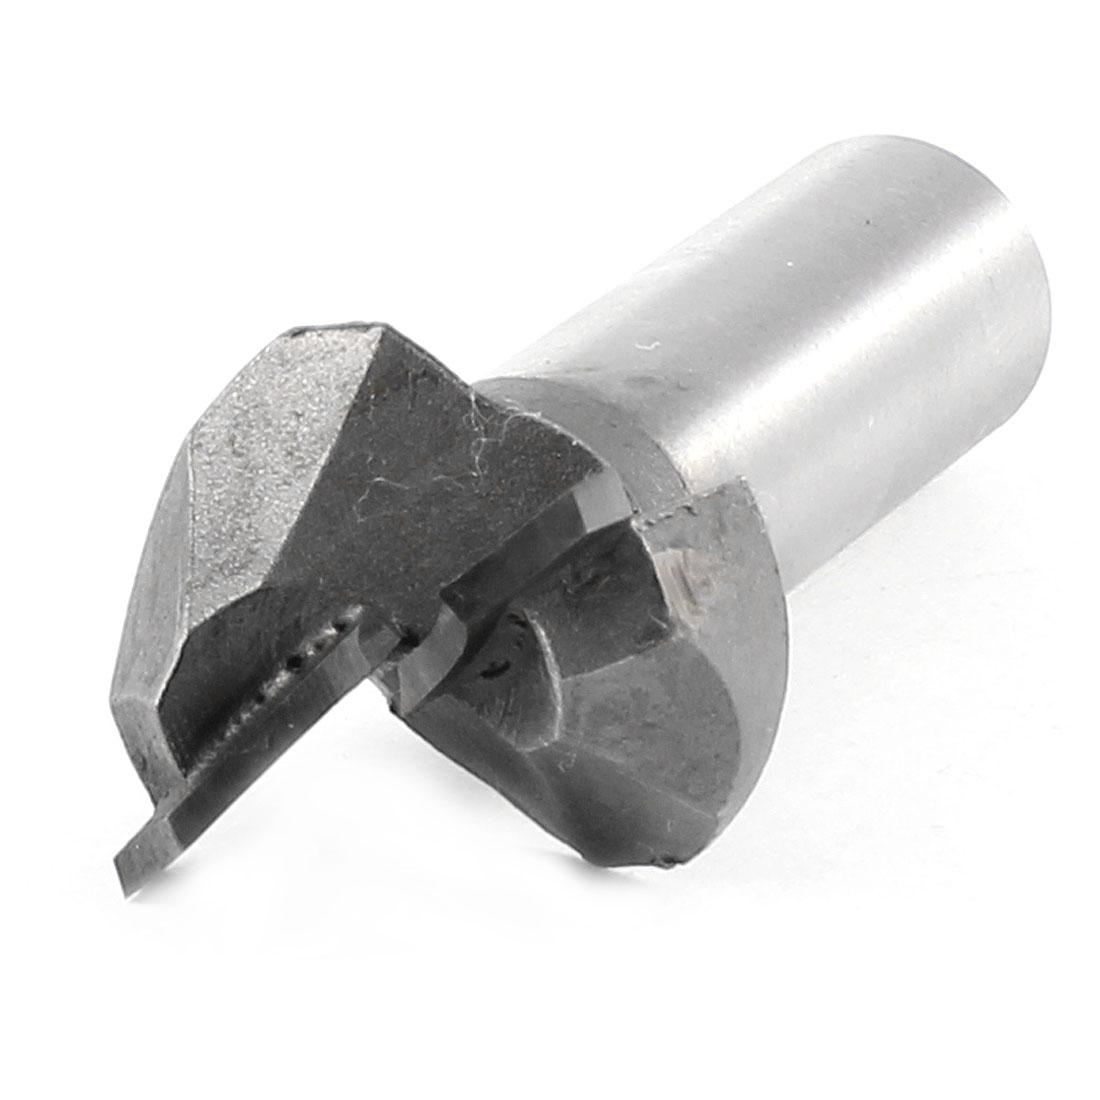 "Straight Shank Metal Round Nose Router Bit Tool 1/2"" x 5/8"" for Woodworking"